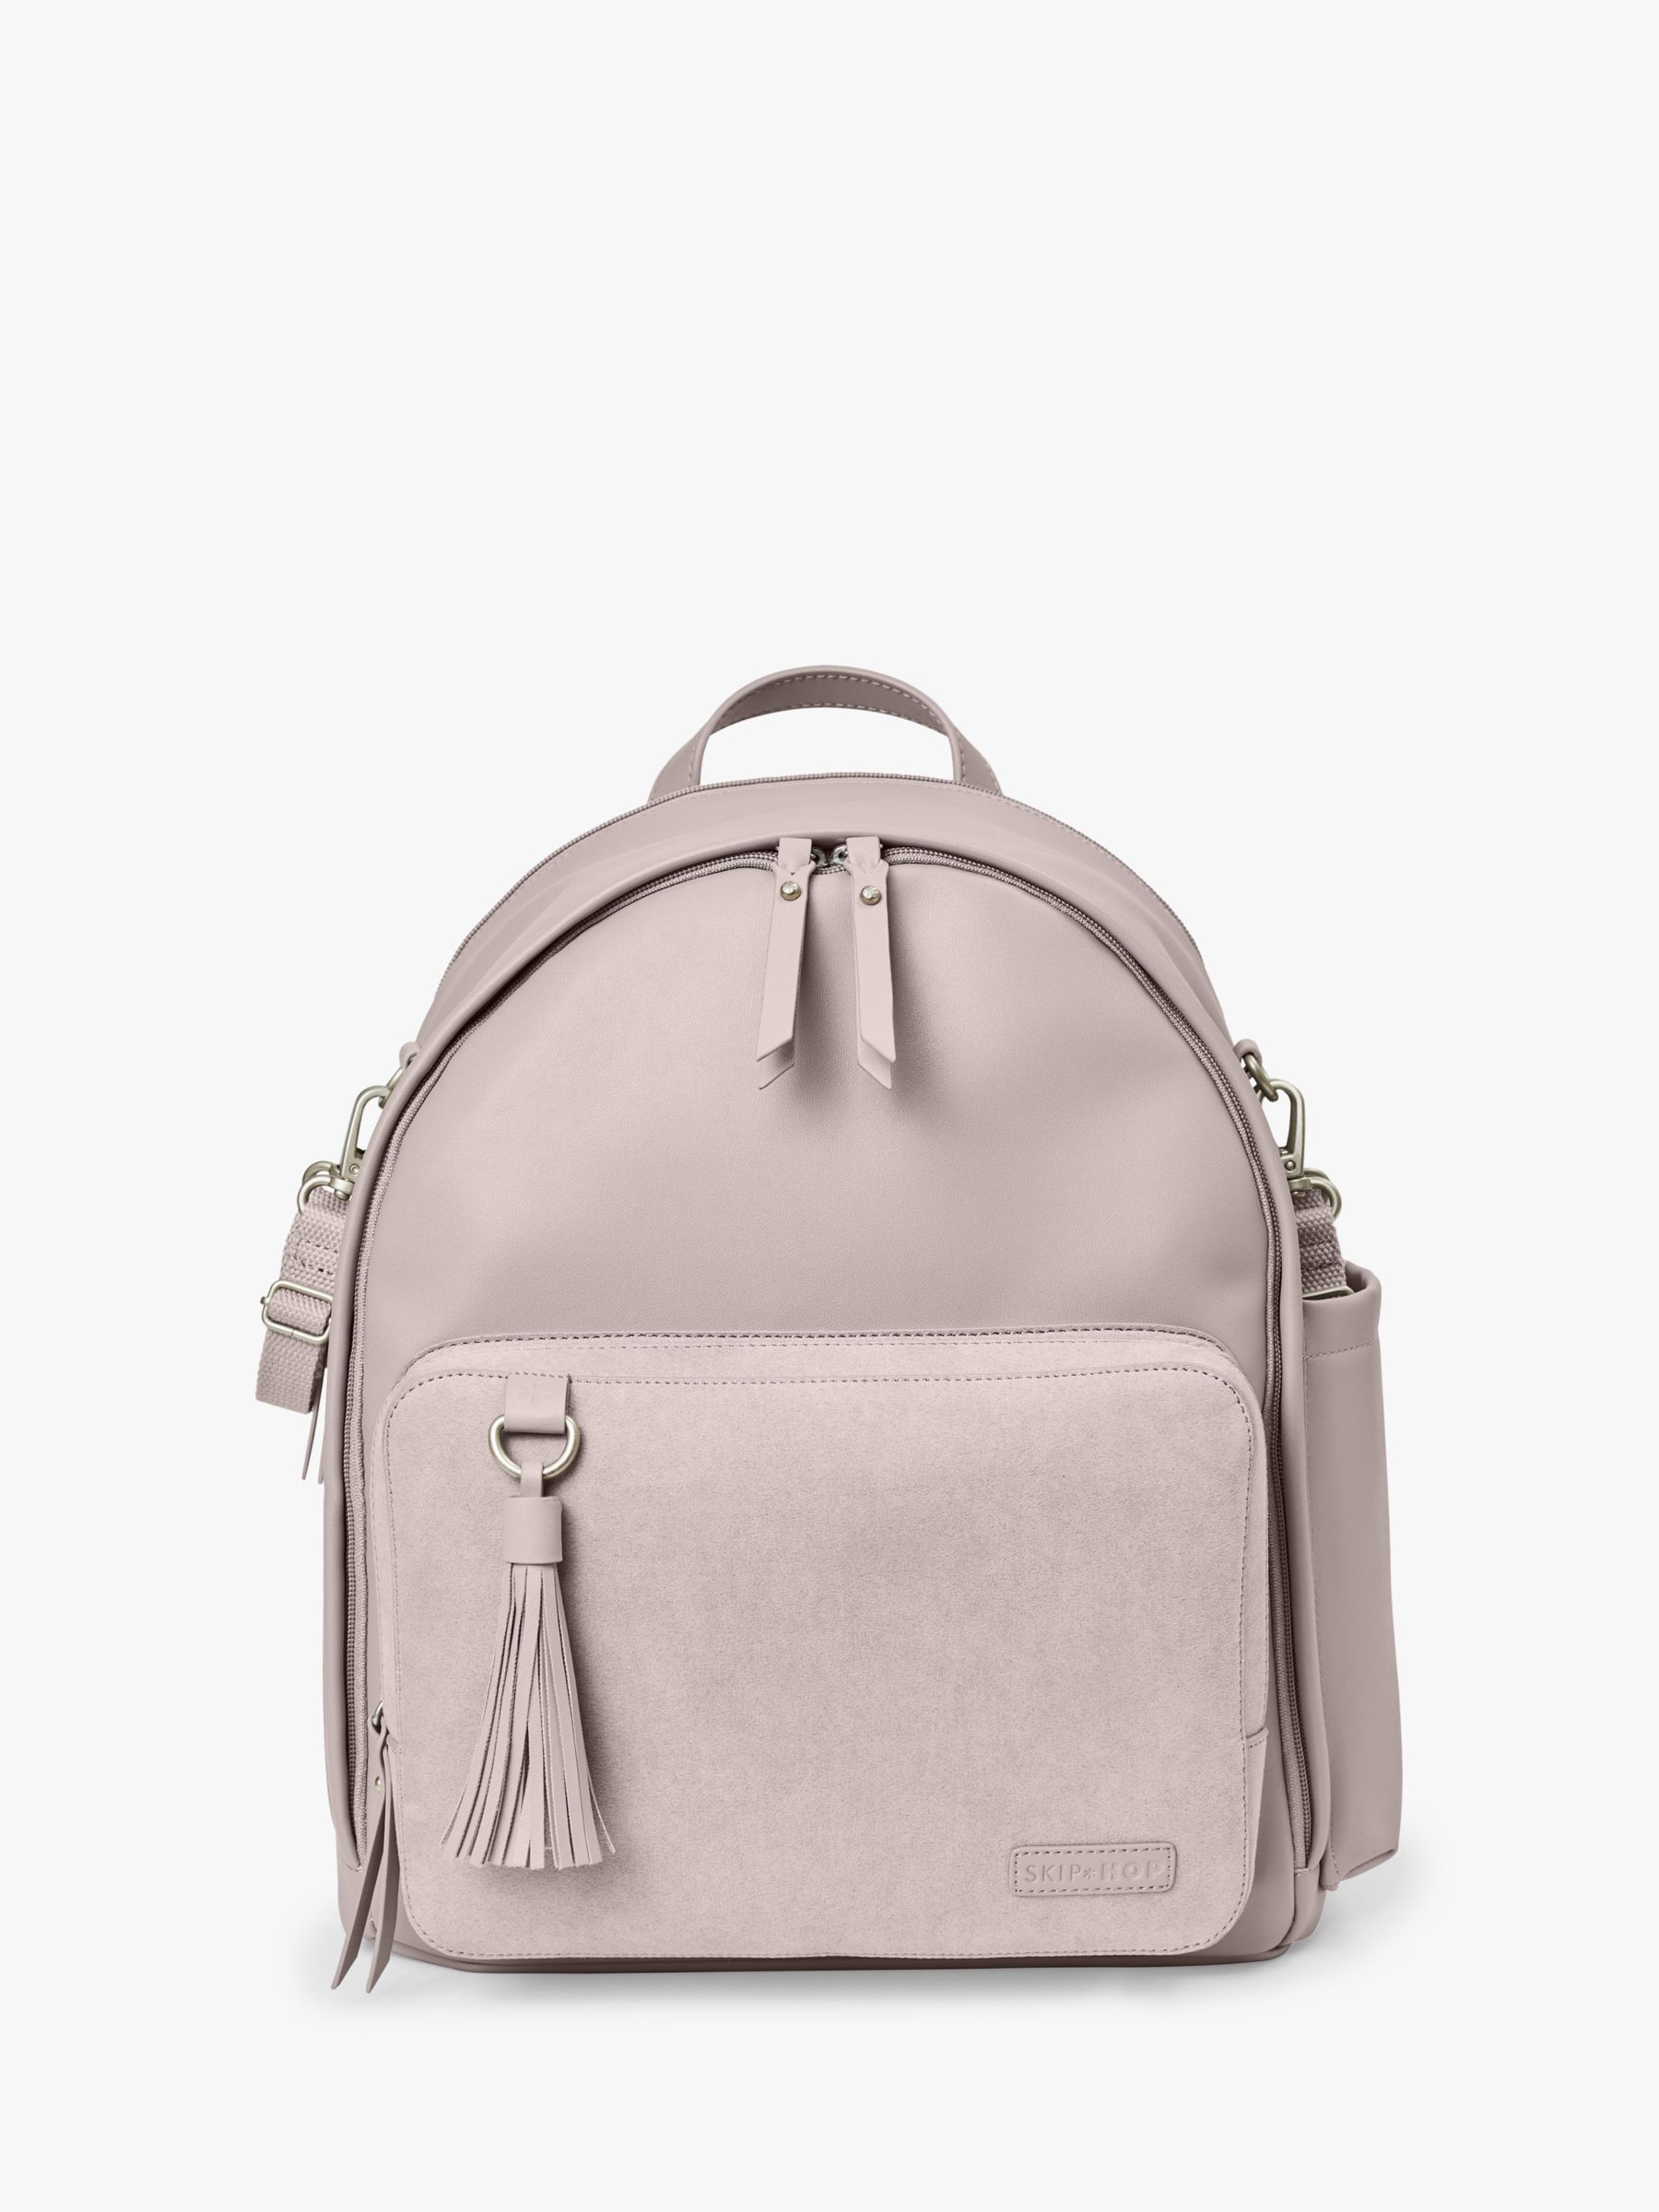 Skip Hop Skip Hop Greenwich Backpack Changing Bag, Taupe